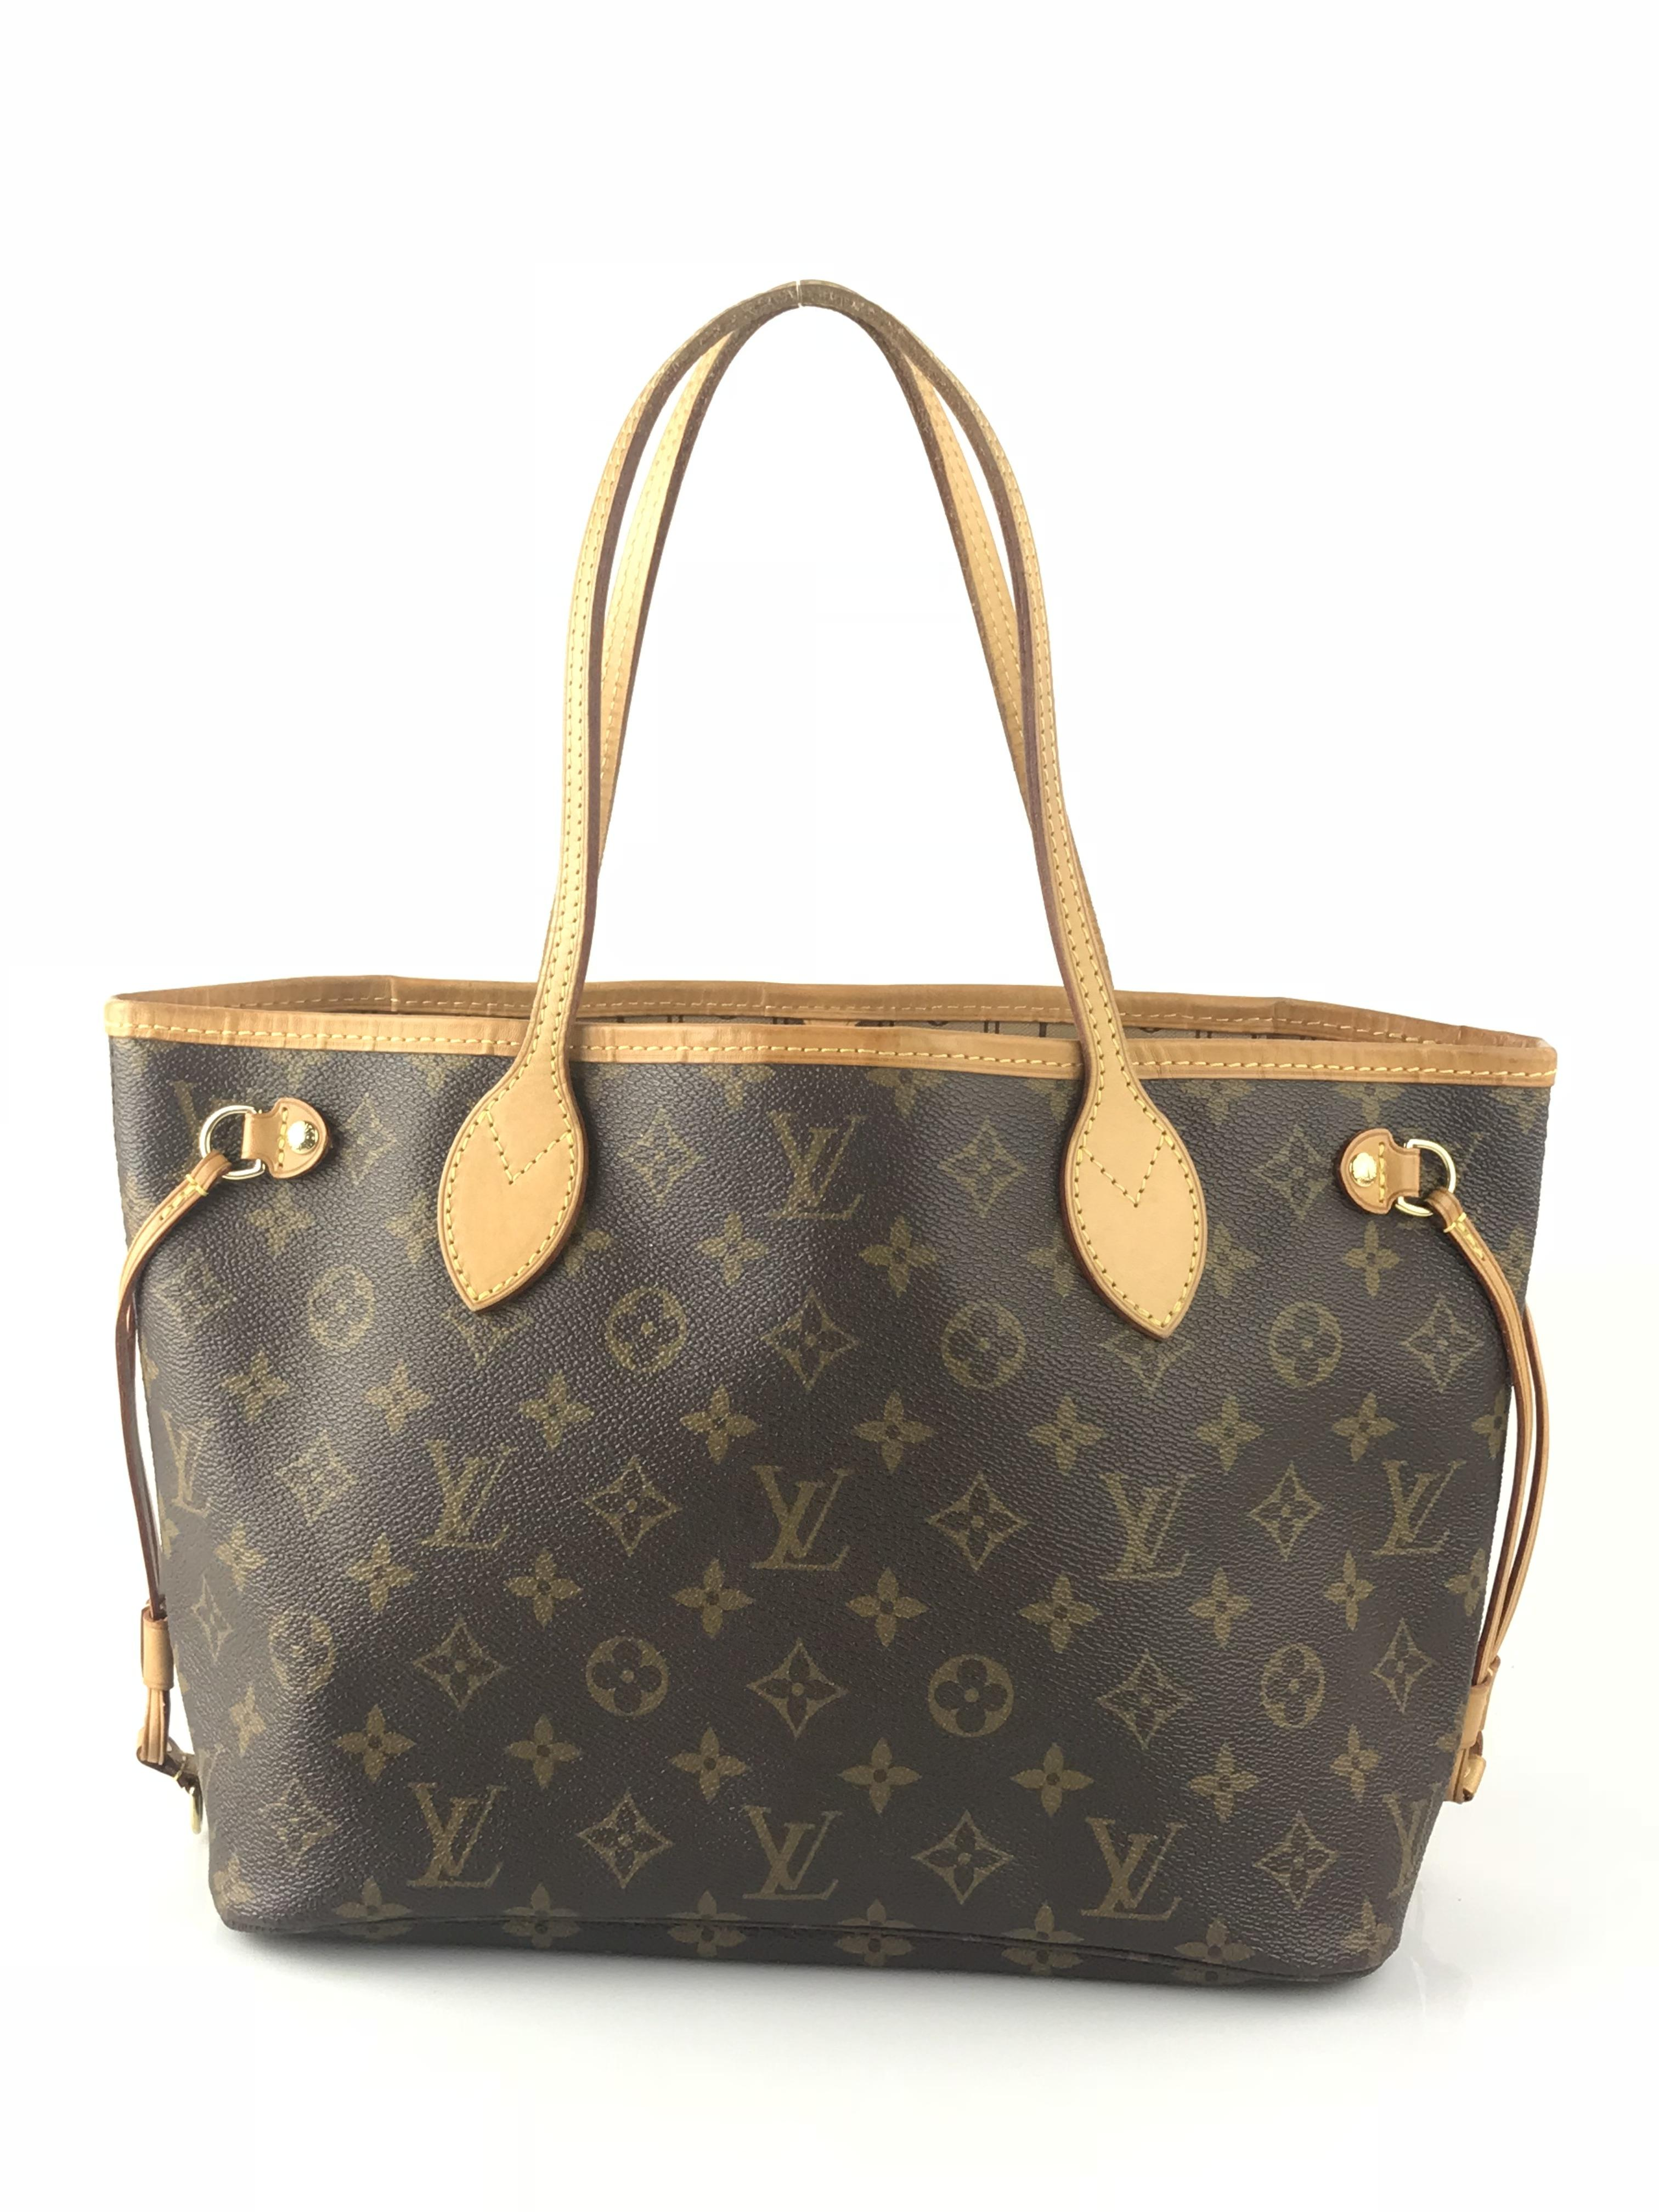 louis vuitton neverfull tote. louis vuitton neverfull leather canvas tote in monogram a